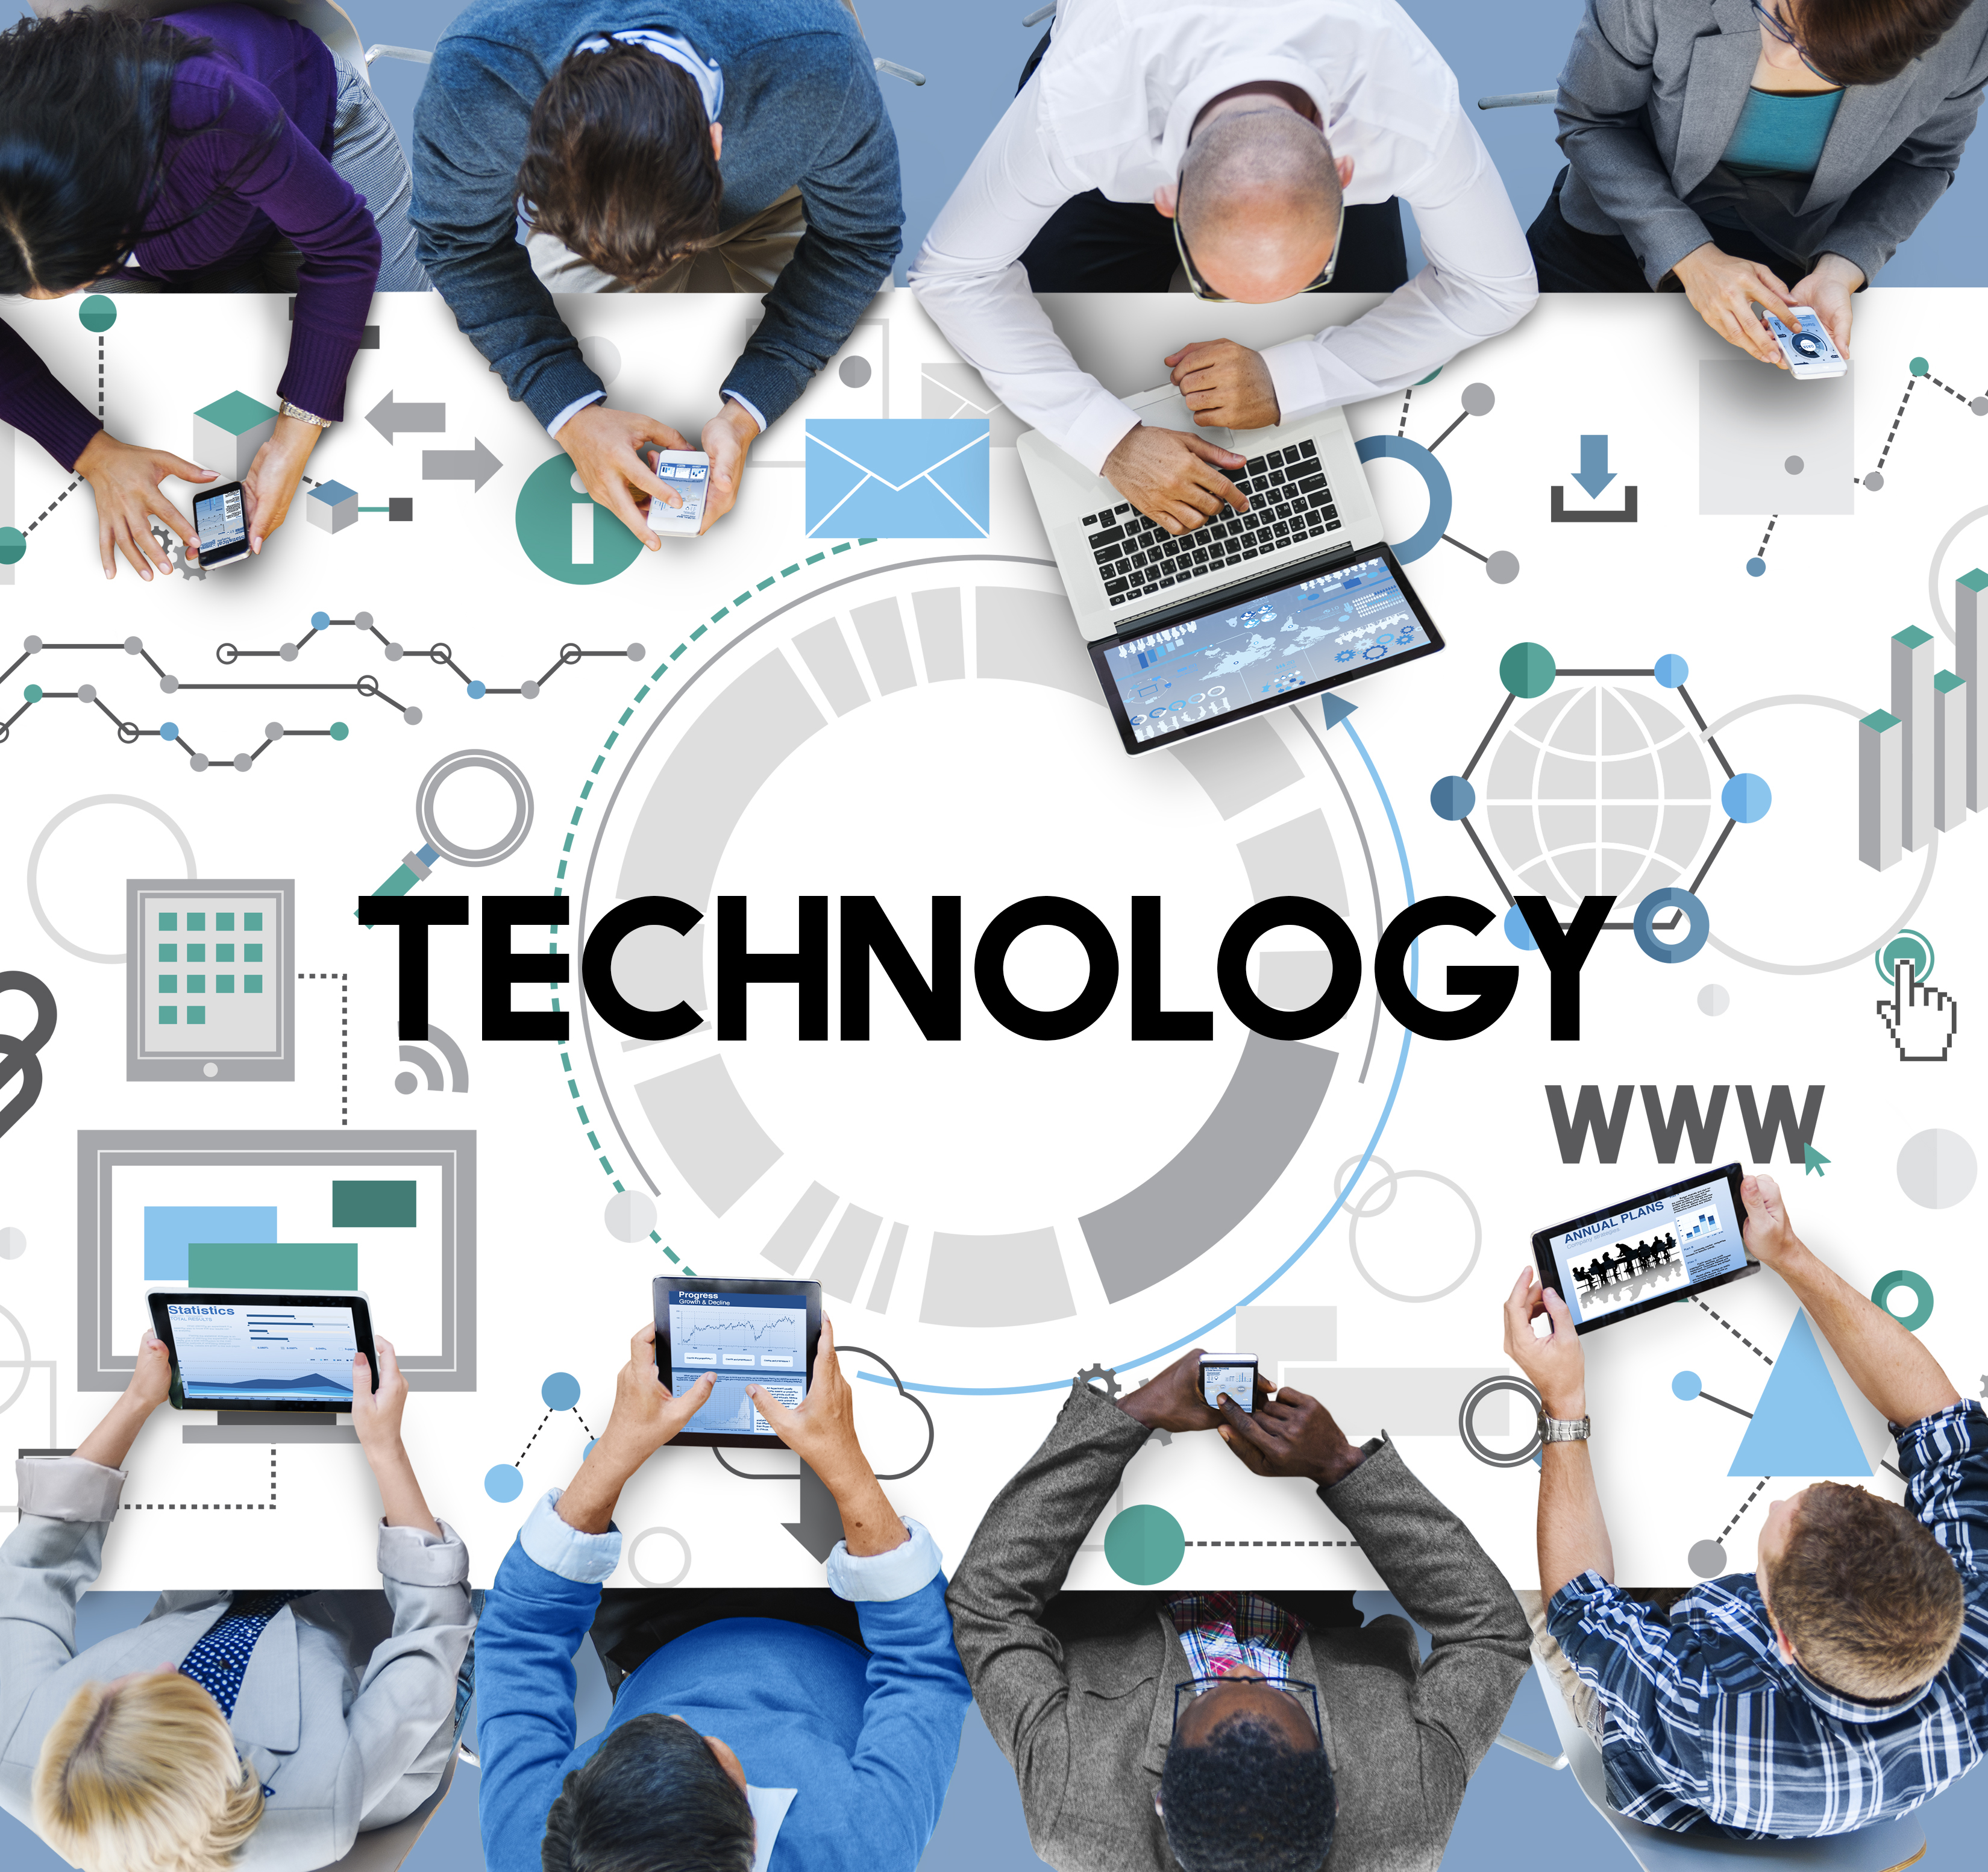 technology revolution Revolution technologies, melbourne, fl 601 likes revolution technologies is a staffing and solutions firm serving middle market to fortune 1000clients.